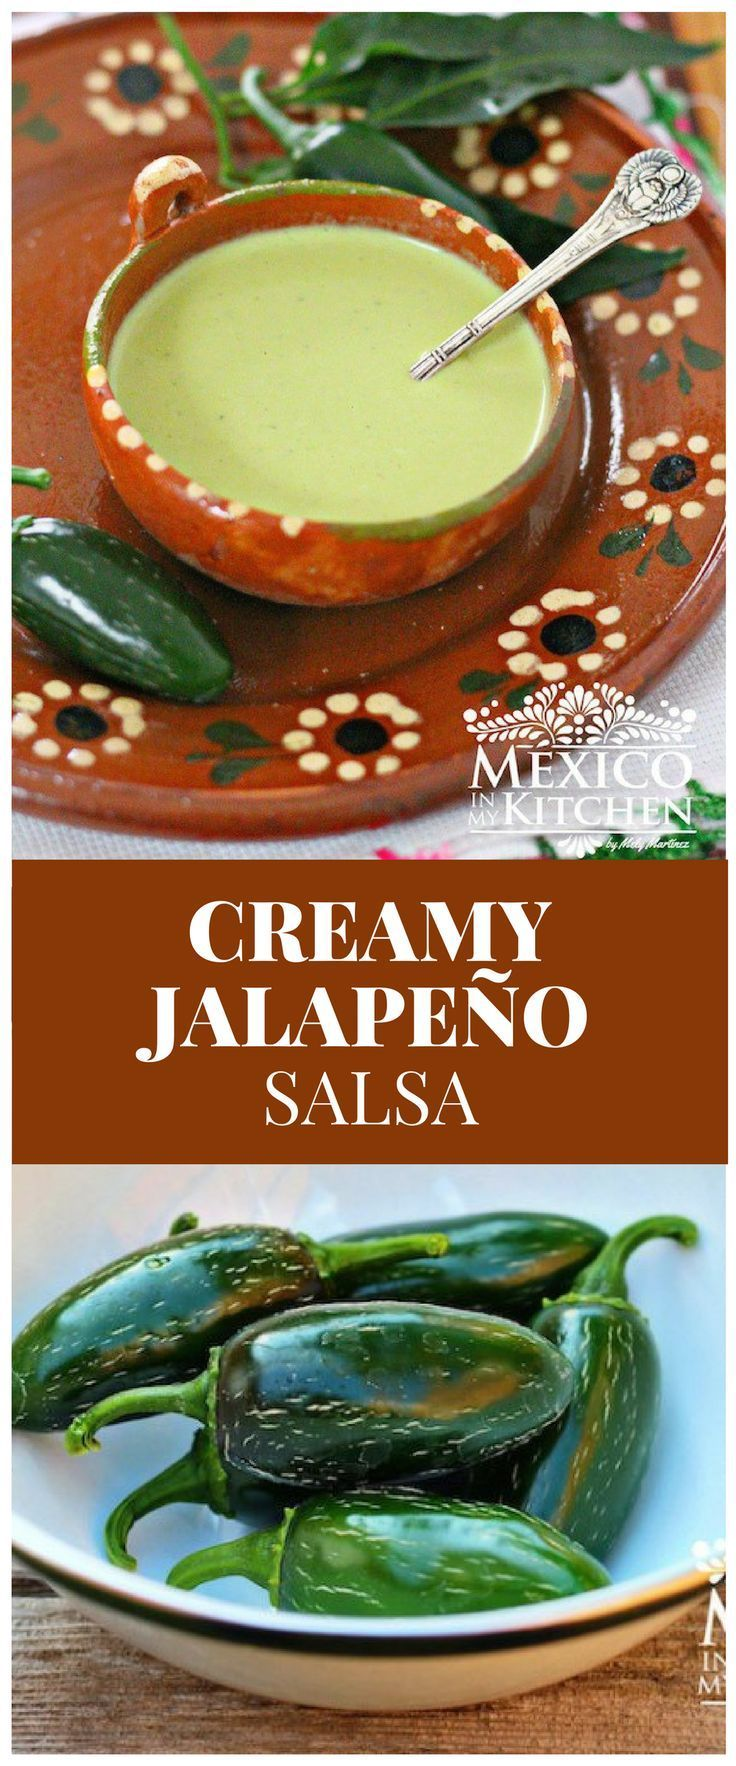 In Mexico, we have a huge variety of peppers, some of which are only known and used in the same region where they are grown. #recipe #mexican #food #salsas #creamy